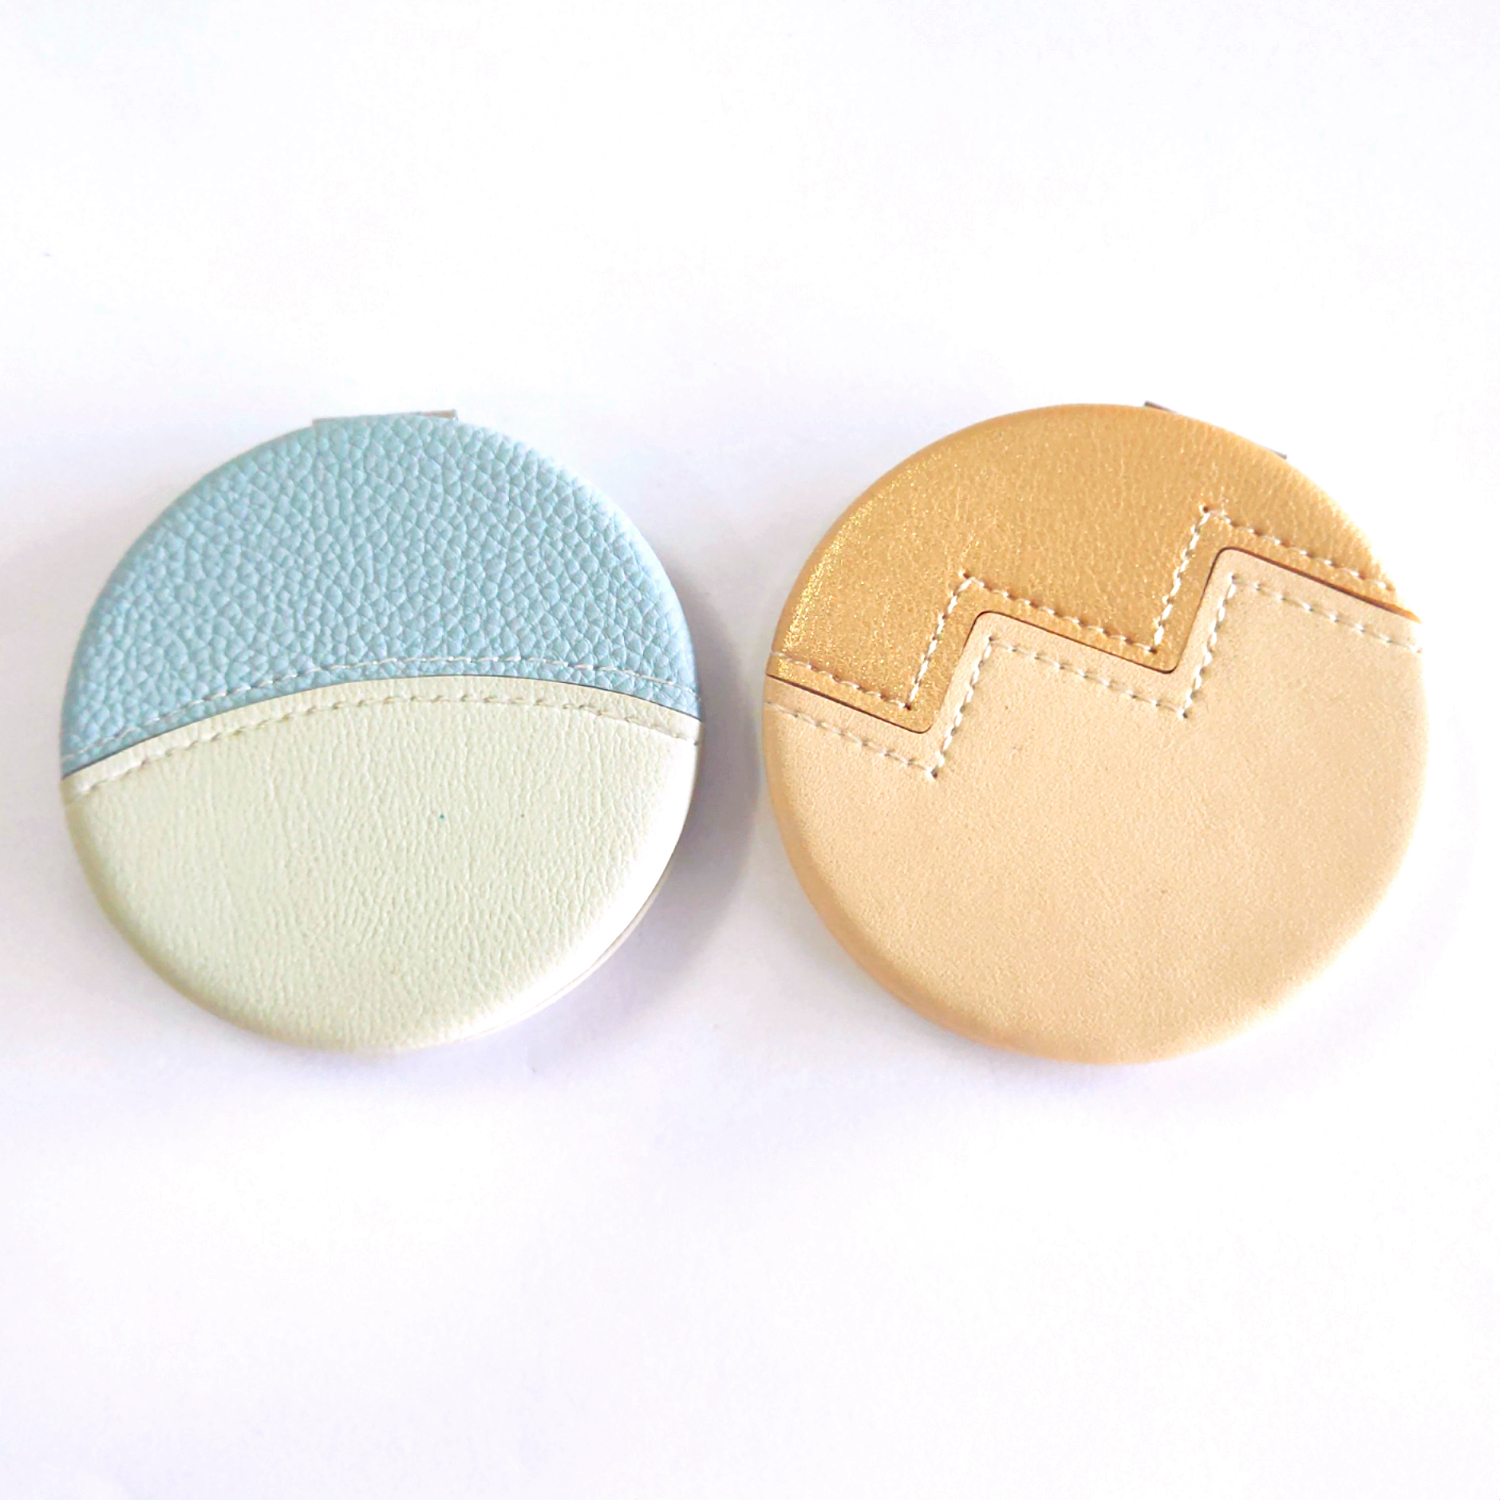 Sewing PU compact Mirror with logo personalization Pocket Mirror in hand luggage